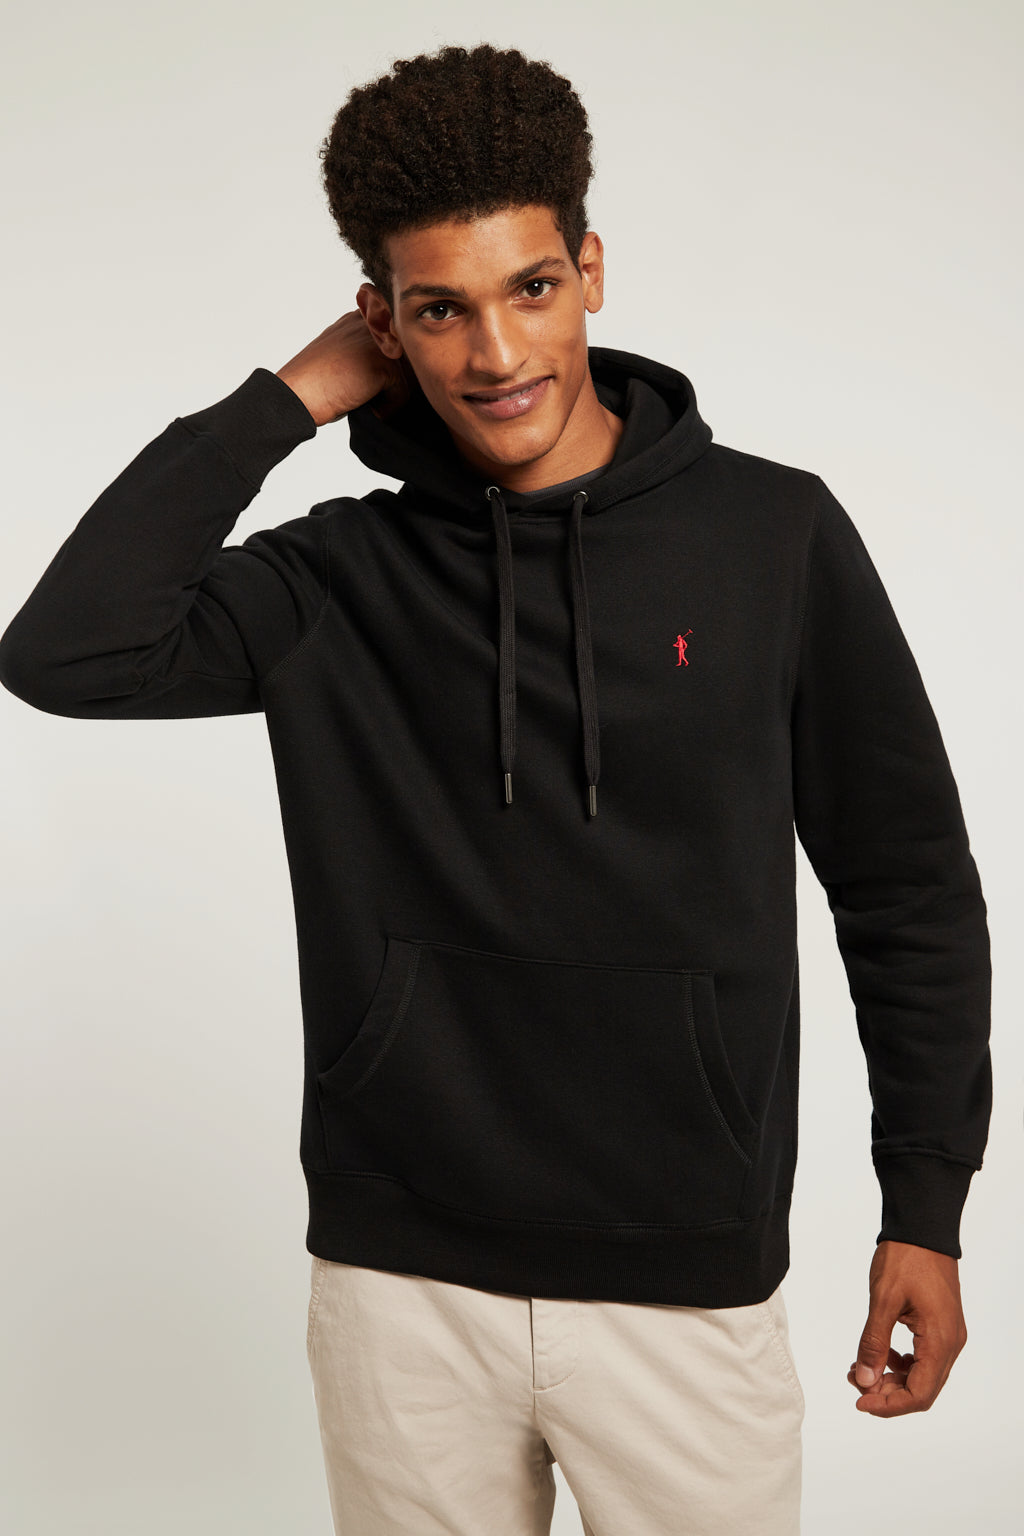 Black hooded sweatshirt with kangaroo pocket